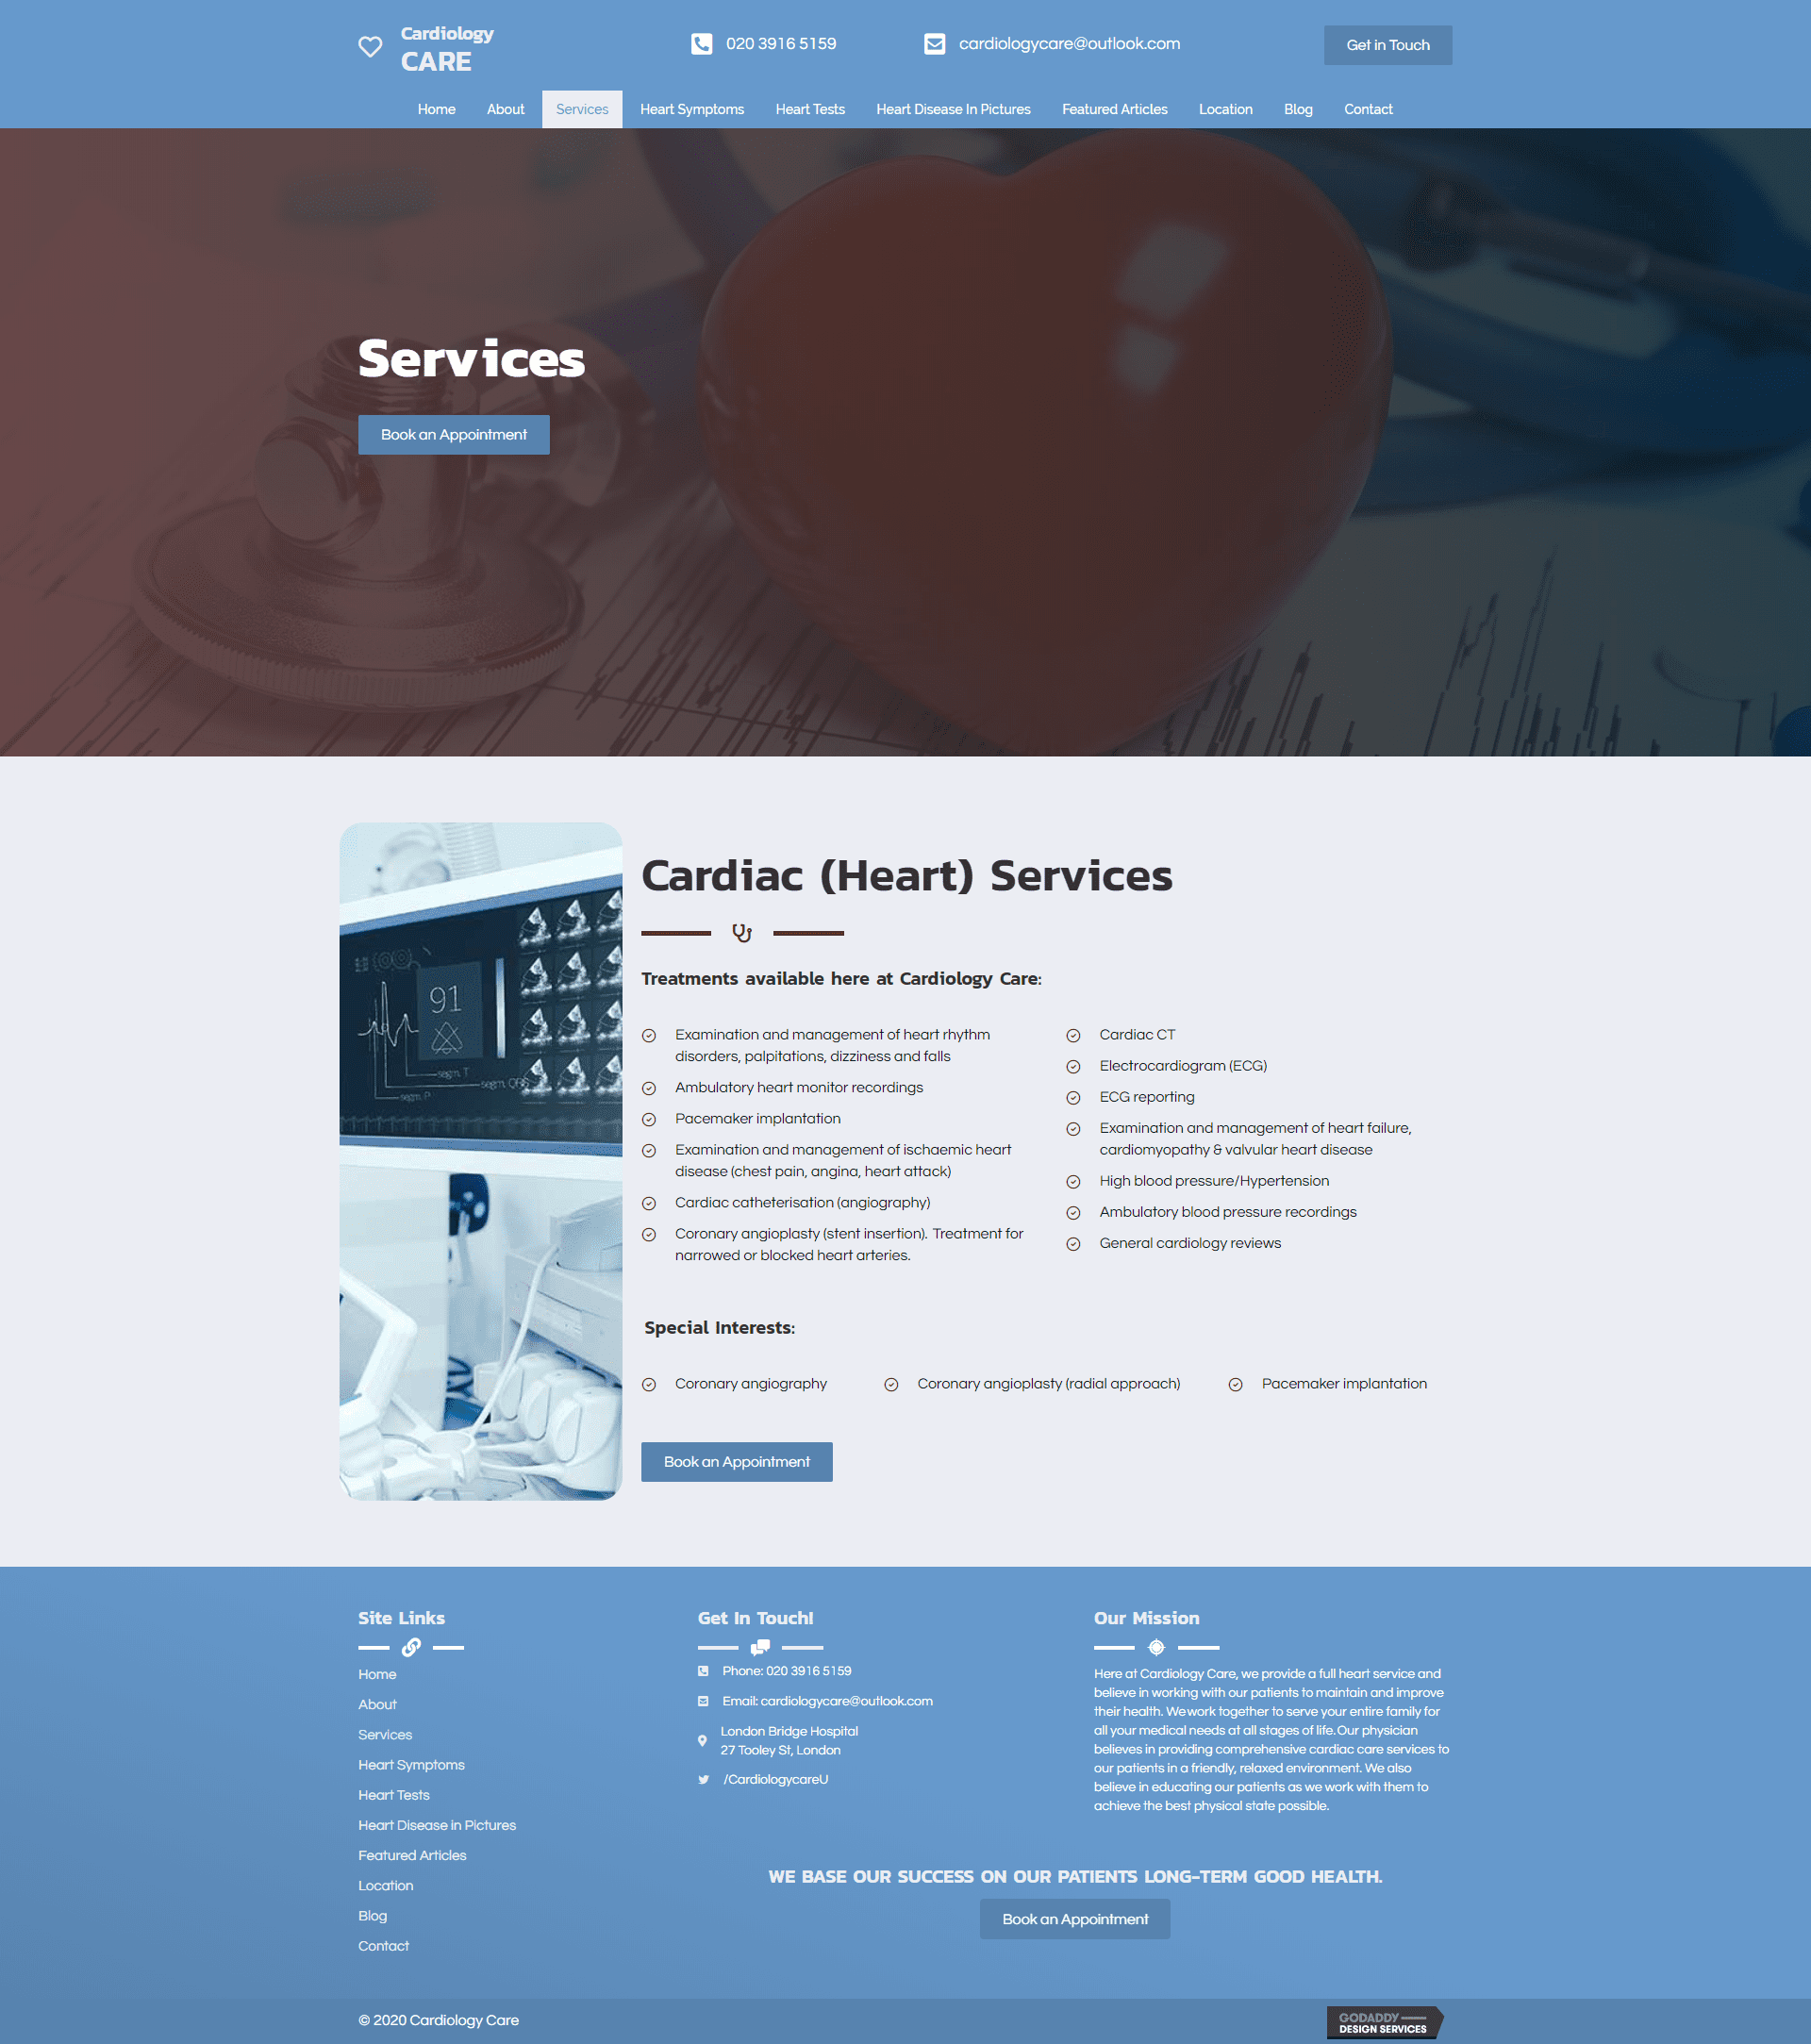 screencapture-cardiologycare-uk-services